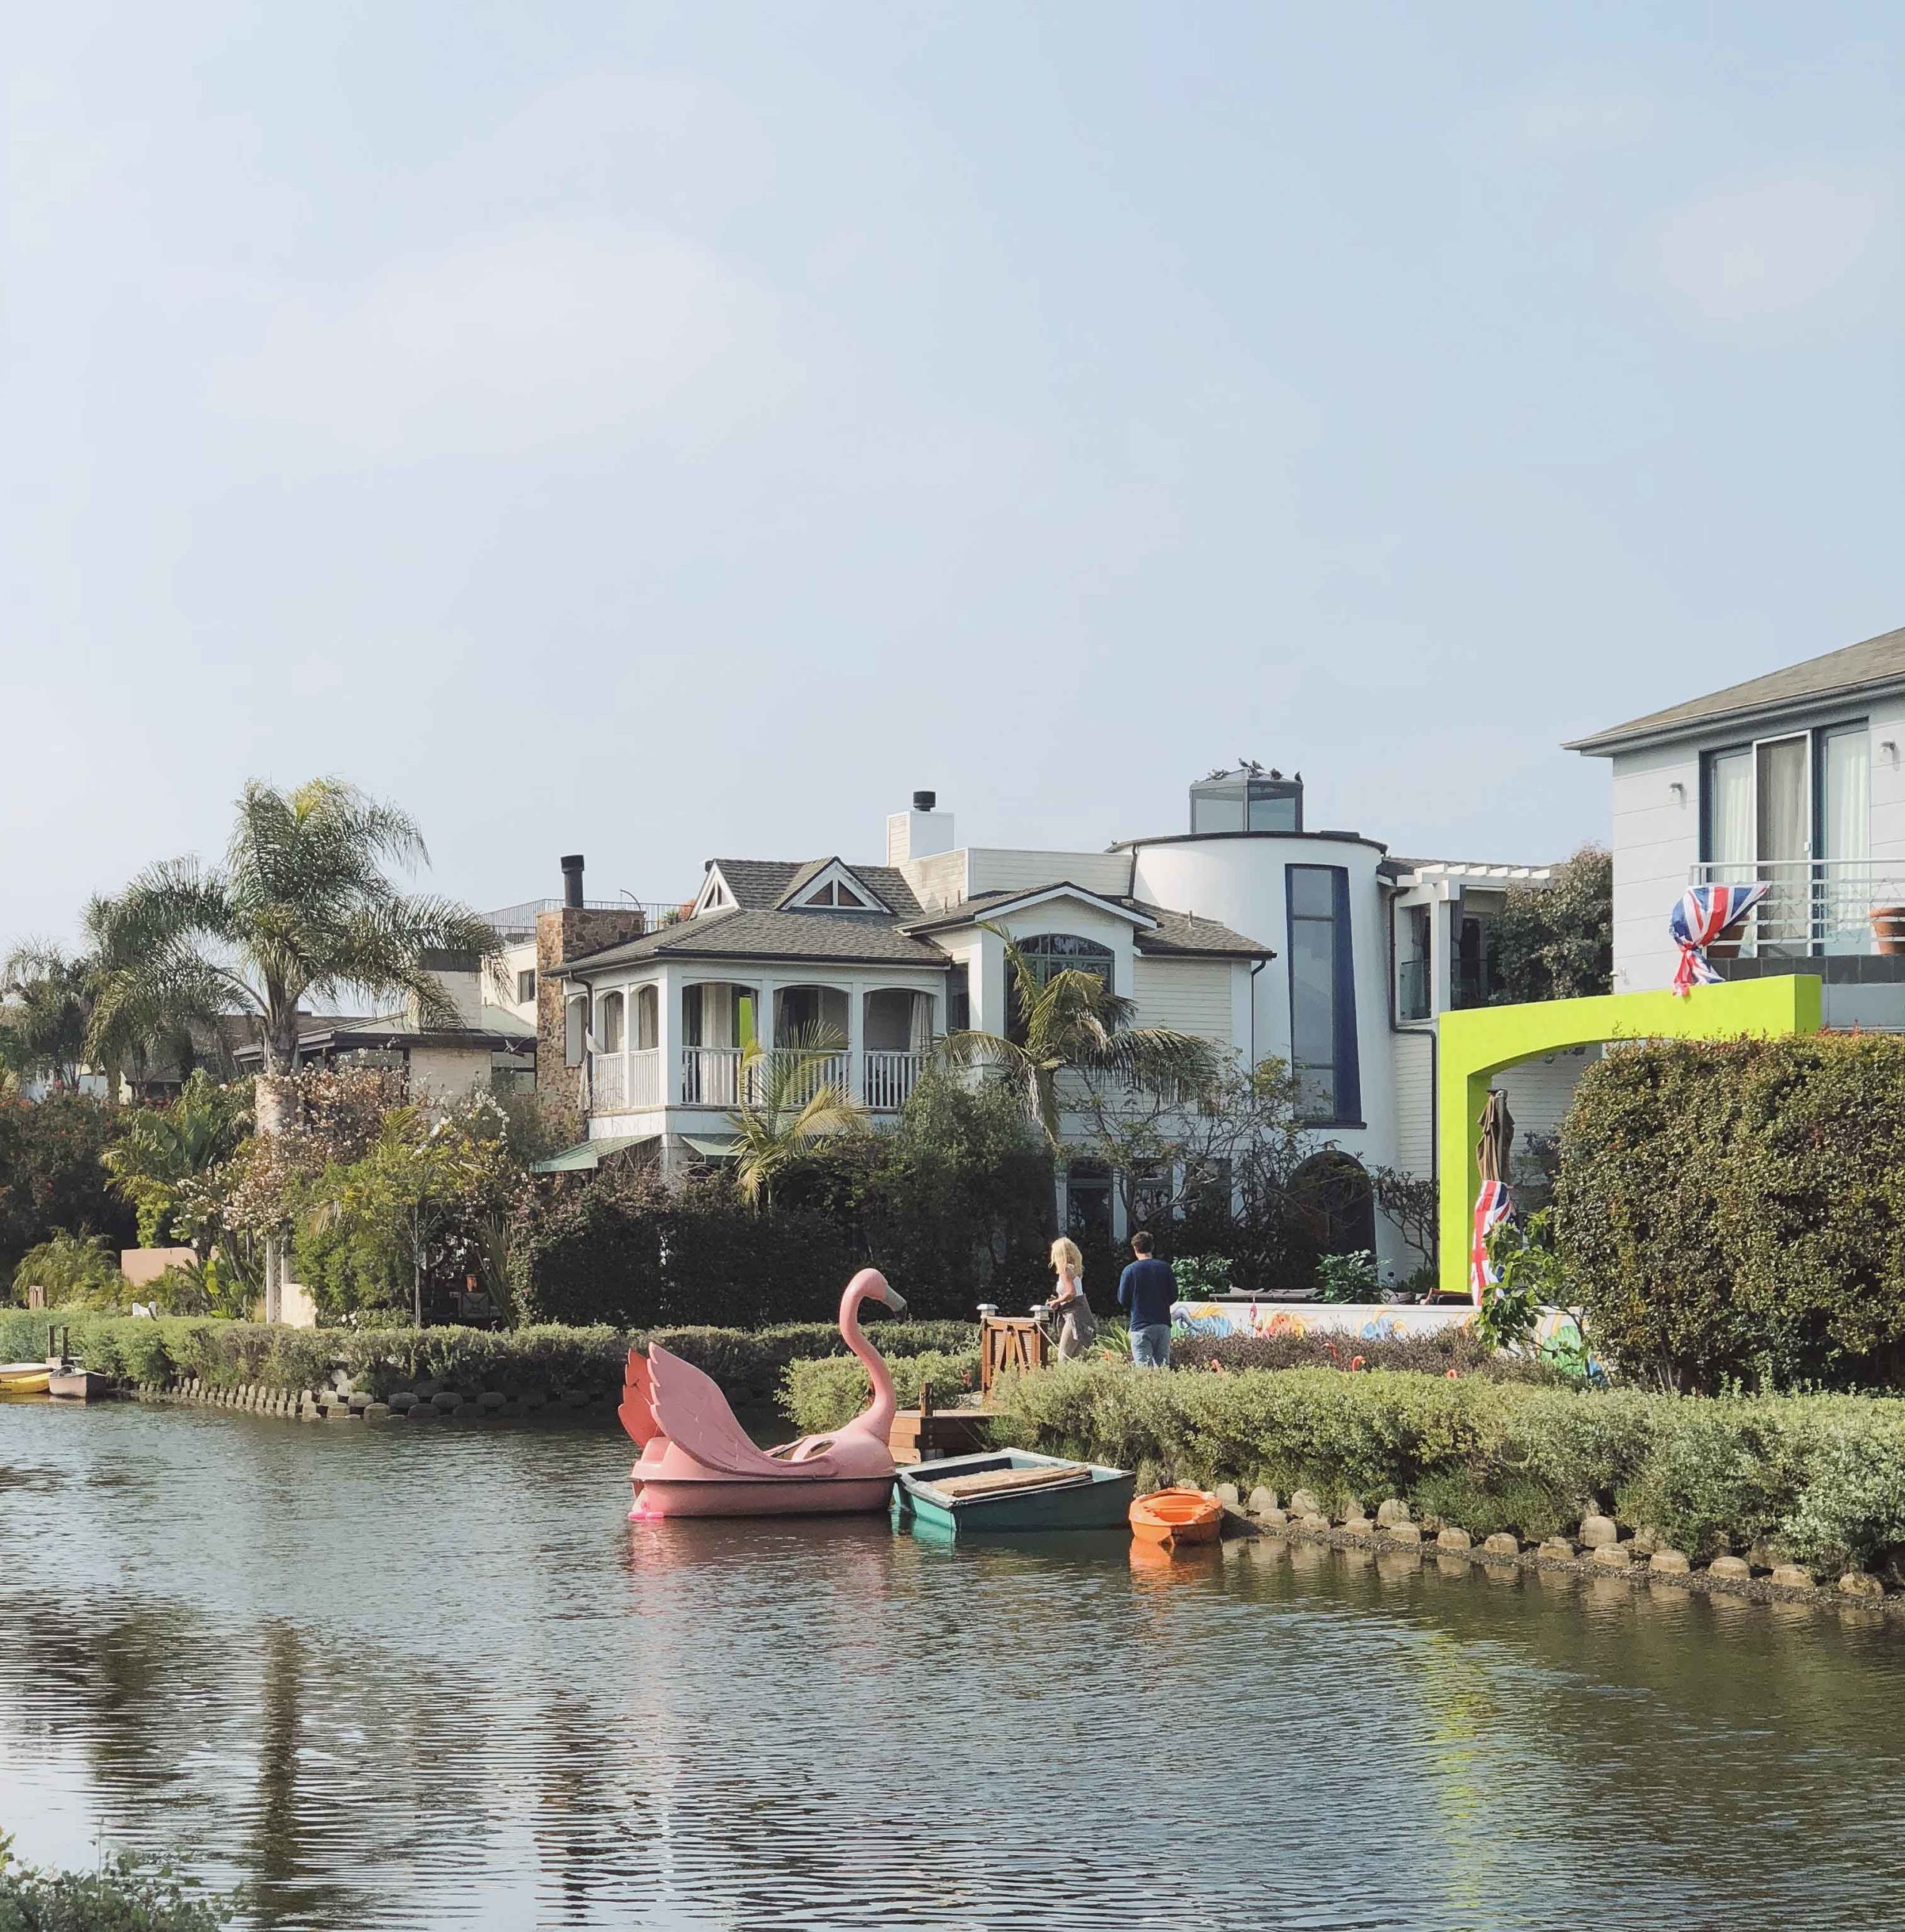 Venice Canals - Visit Venice Beach Venice Beach Inspiration by French fashion blogger julia comil in Los Angeles